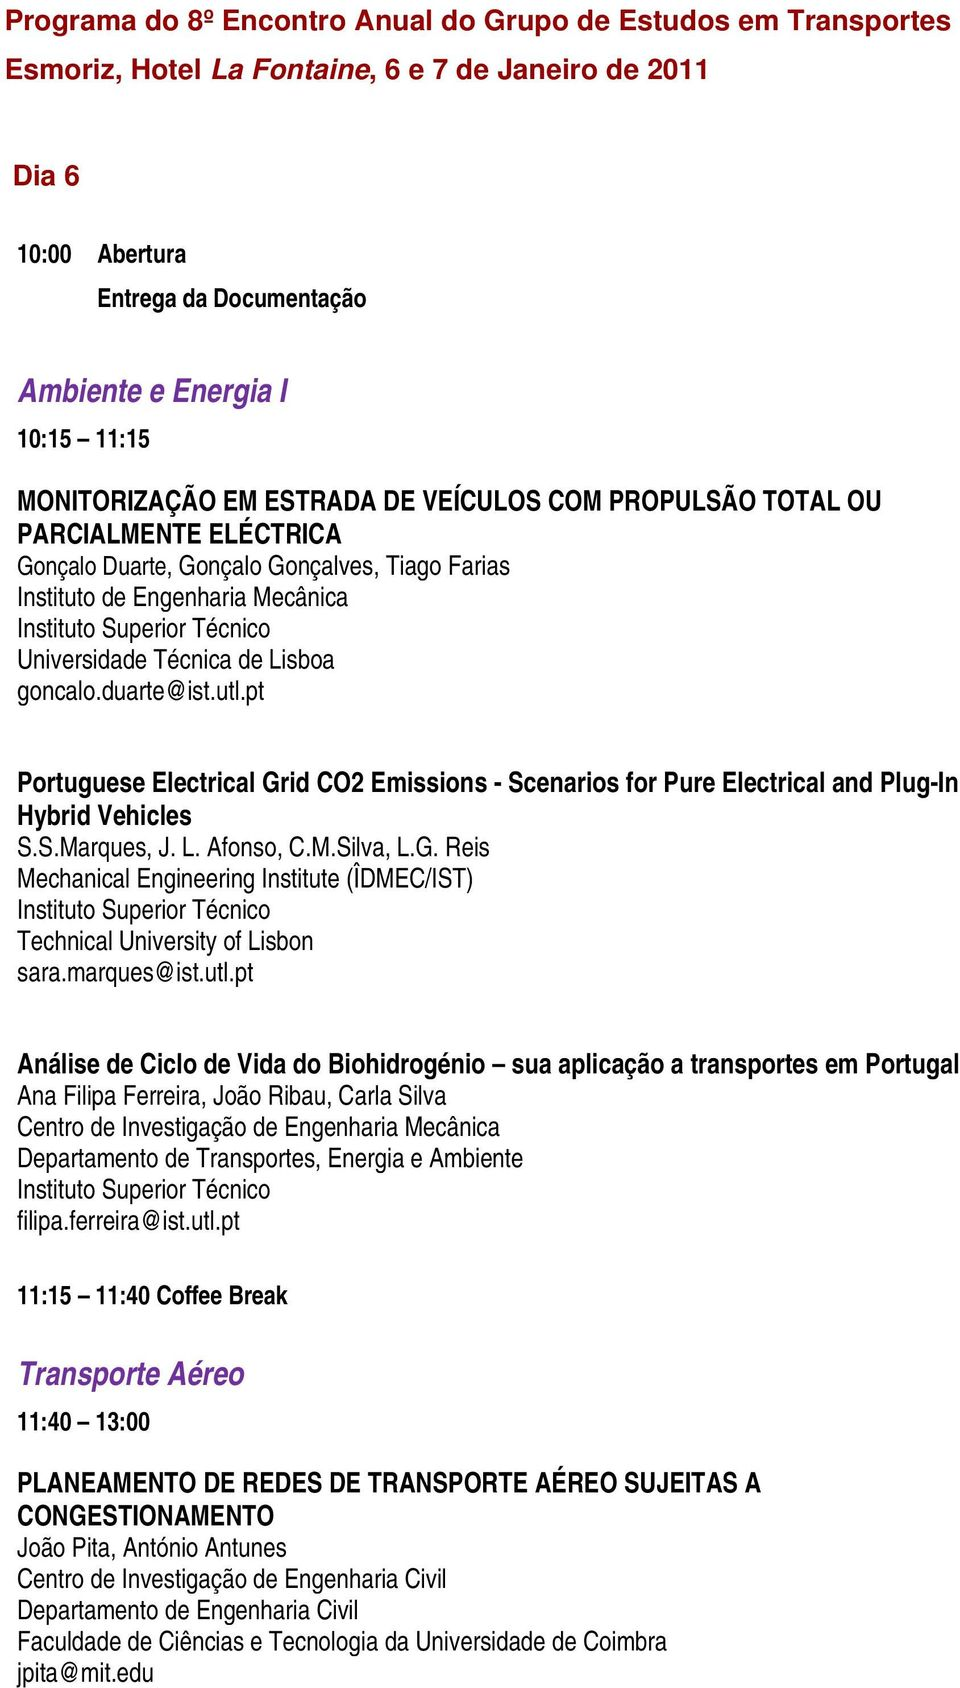 goncalo.duarte@ist.utl.pt Portuguese Electrical Grid CO2 Emissions - Scenarios for Pure Electrical and Plug-In Hybrid Vehicles S.S.Marques, J. L. Afonso, C.M.Silva, L.G. Reis Mechanical Engineering Institute (ÎDMEC/IST) Technical University of Lisbon sara.